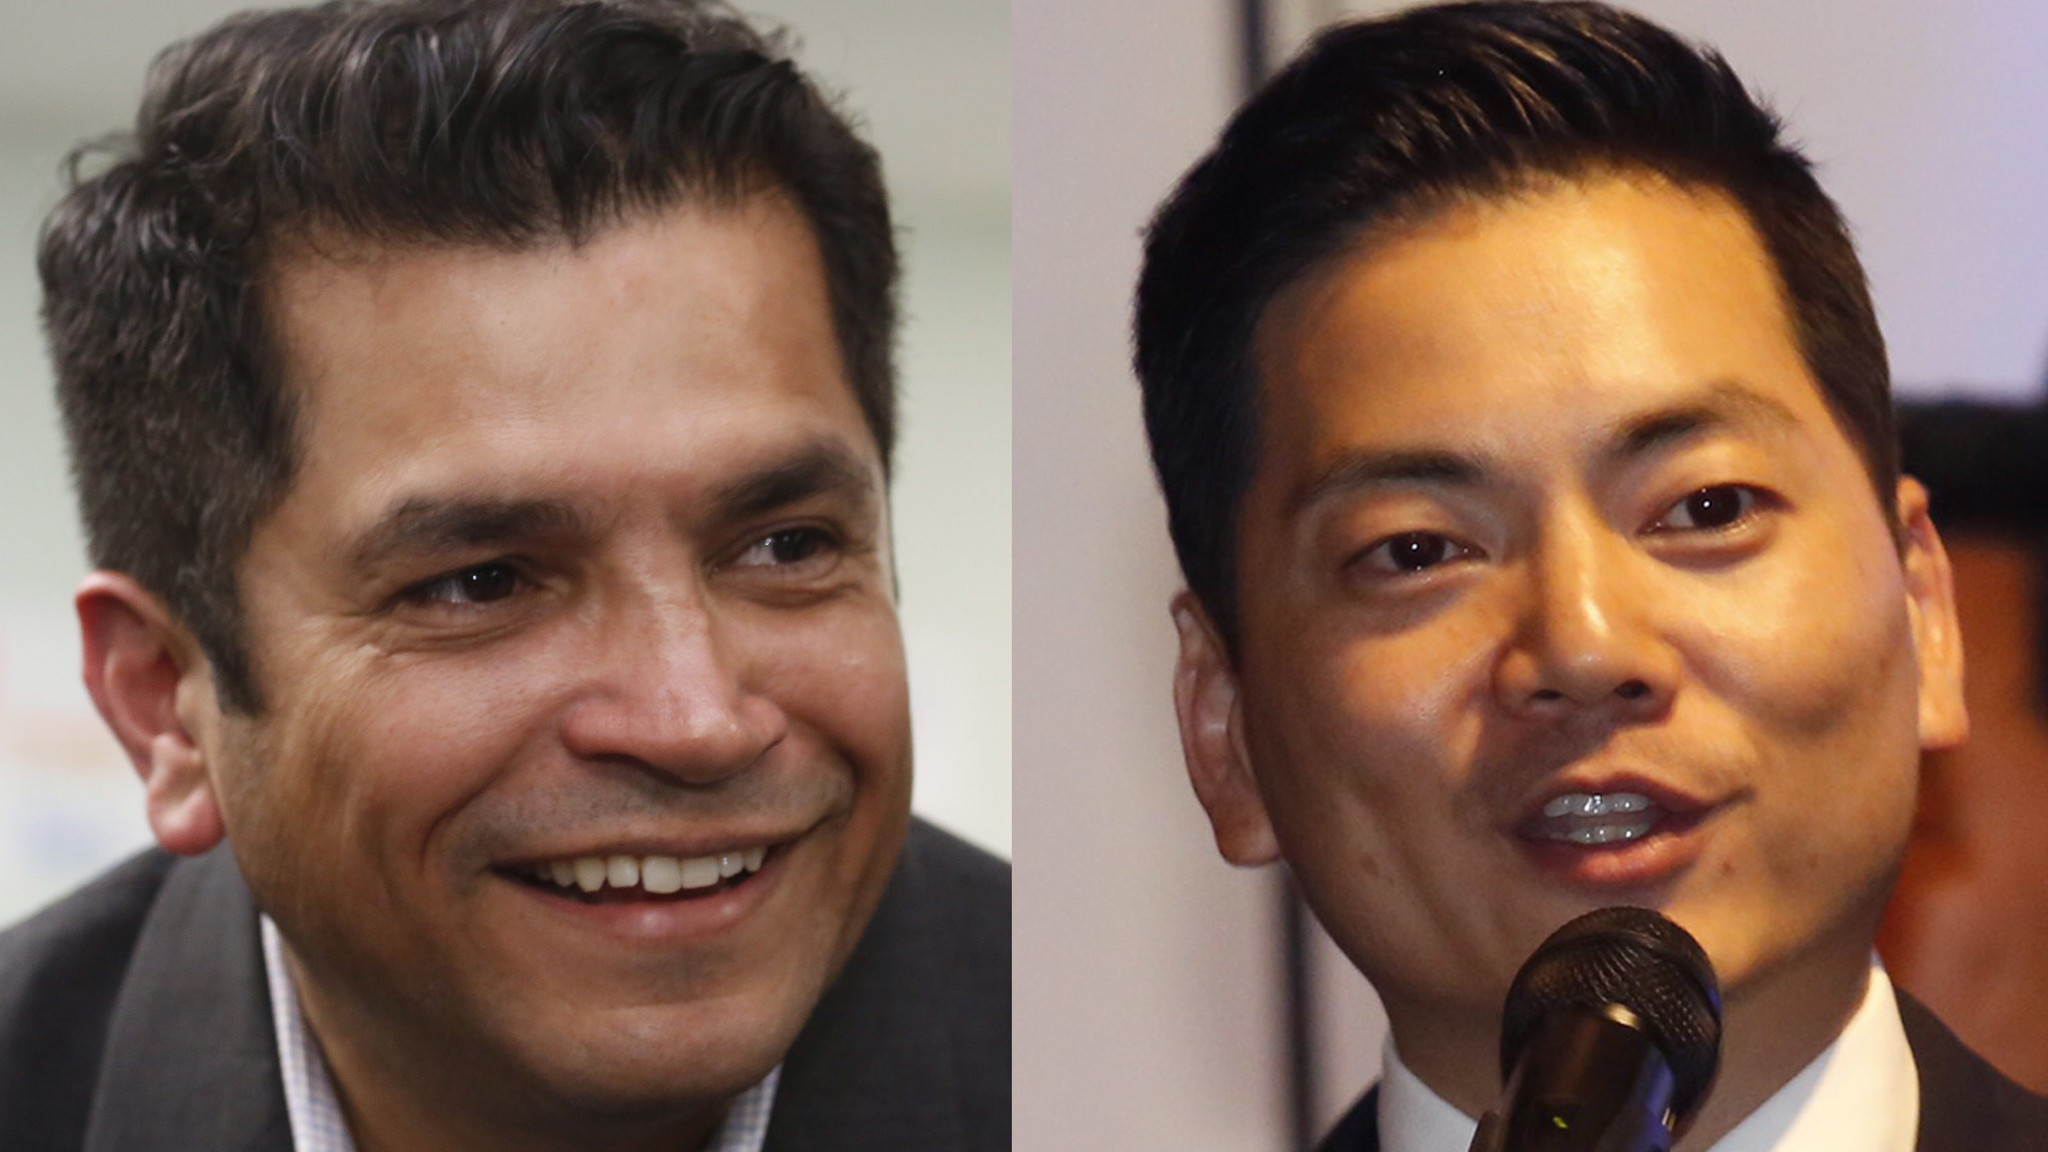 Assemblyman Jimmy Gomez, left, and Robert Lee Ahn, right, spent a lot of their money in the final days of the primary campaign. (Los Angeles Times)